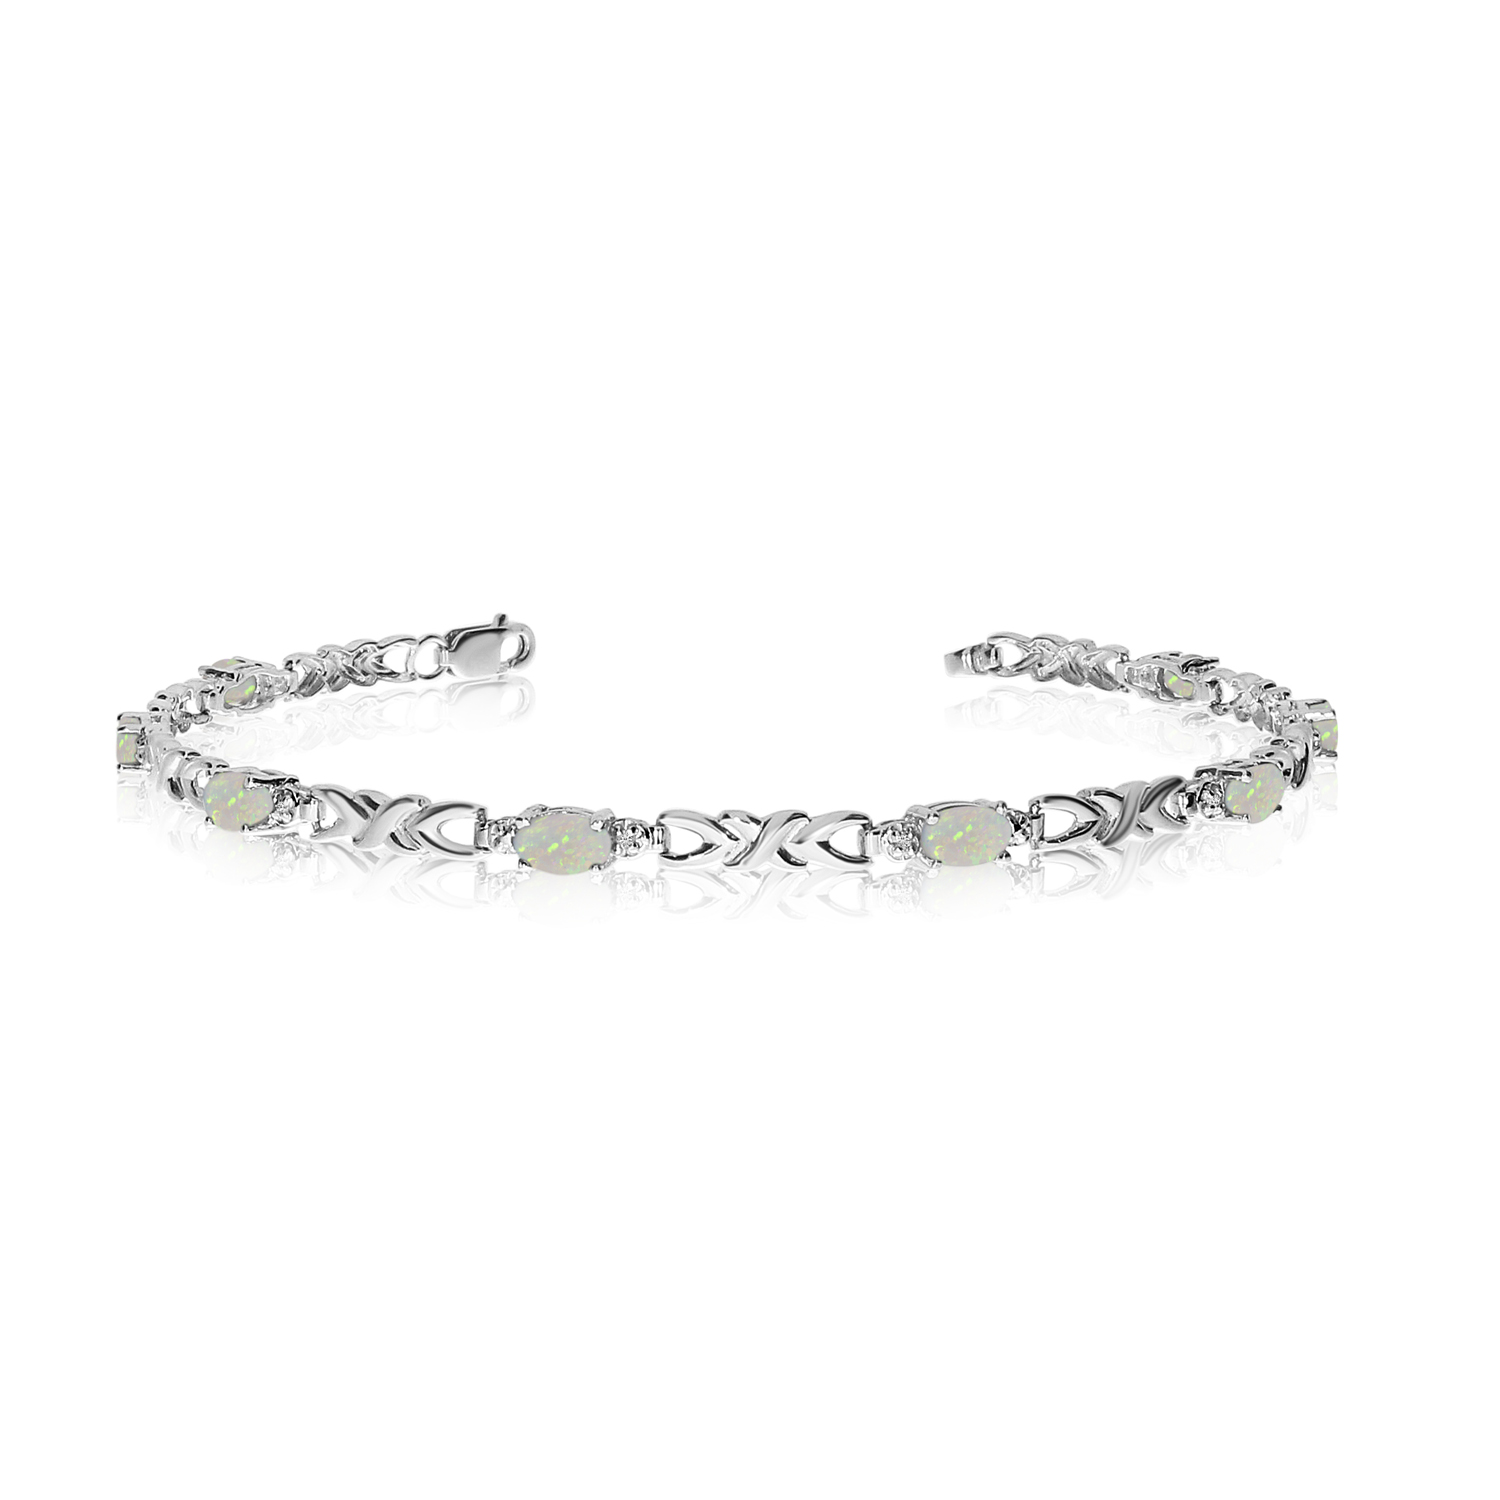 14K White Gold Oval Opal and Diamond Bracelet by